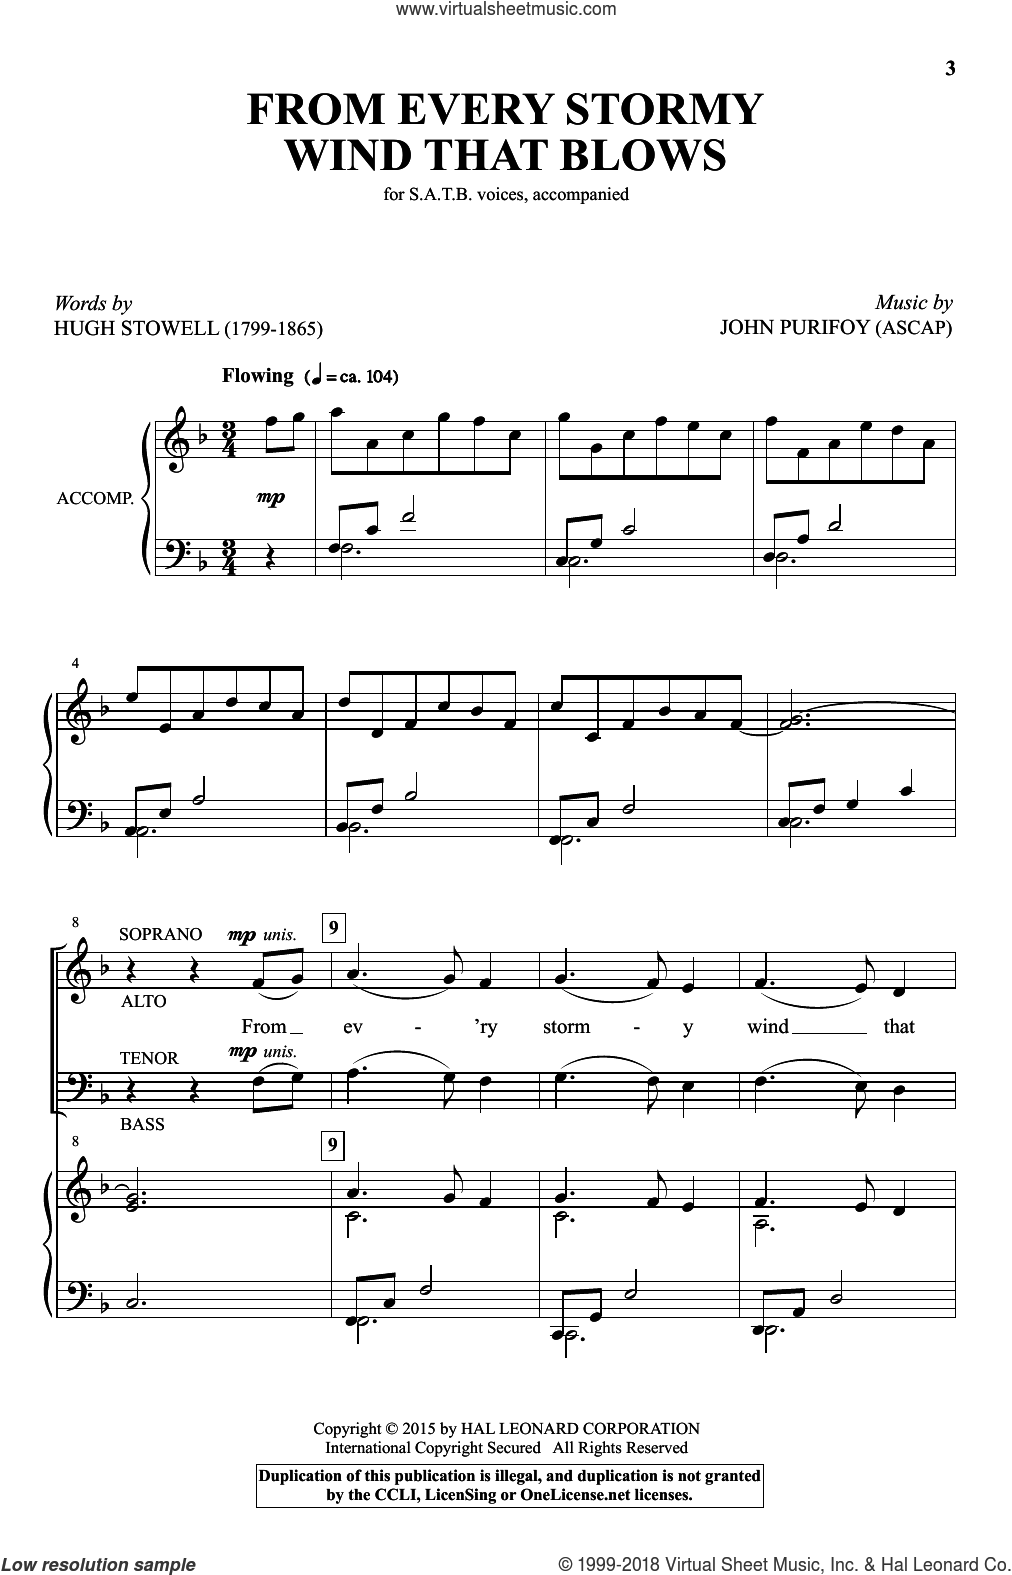 From Every Stormy Wind That Blows sheet music for choir and piano (SATB) by John Purifoy. Score Image Preview.